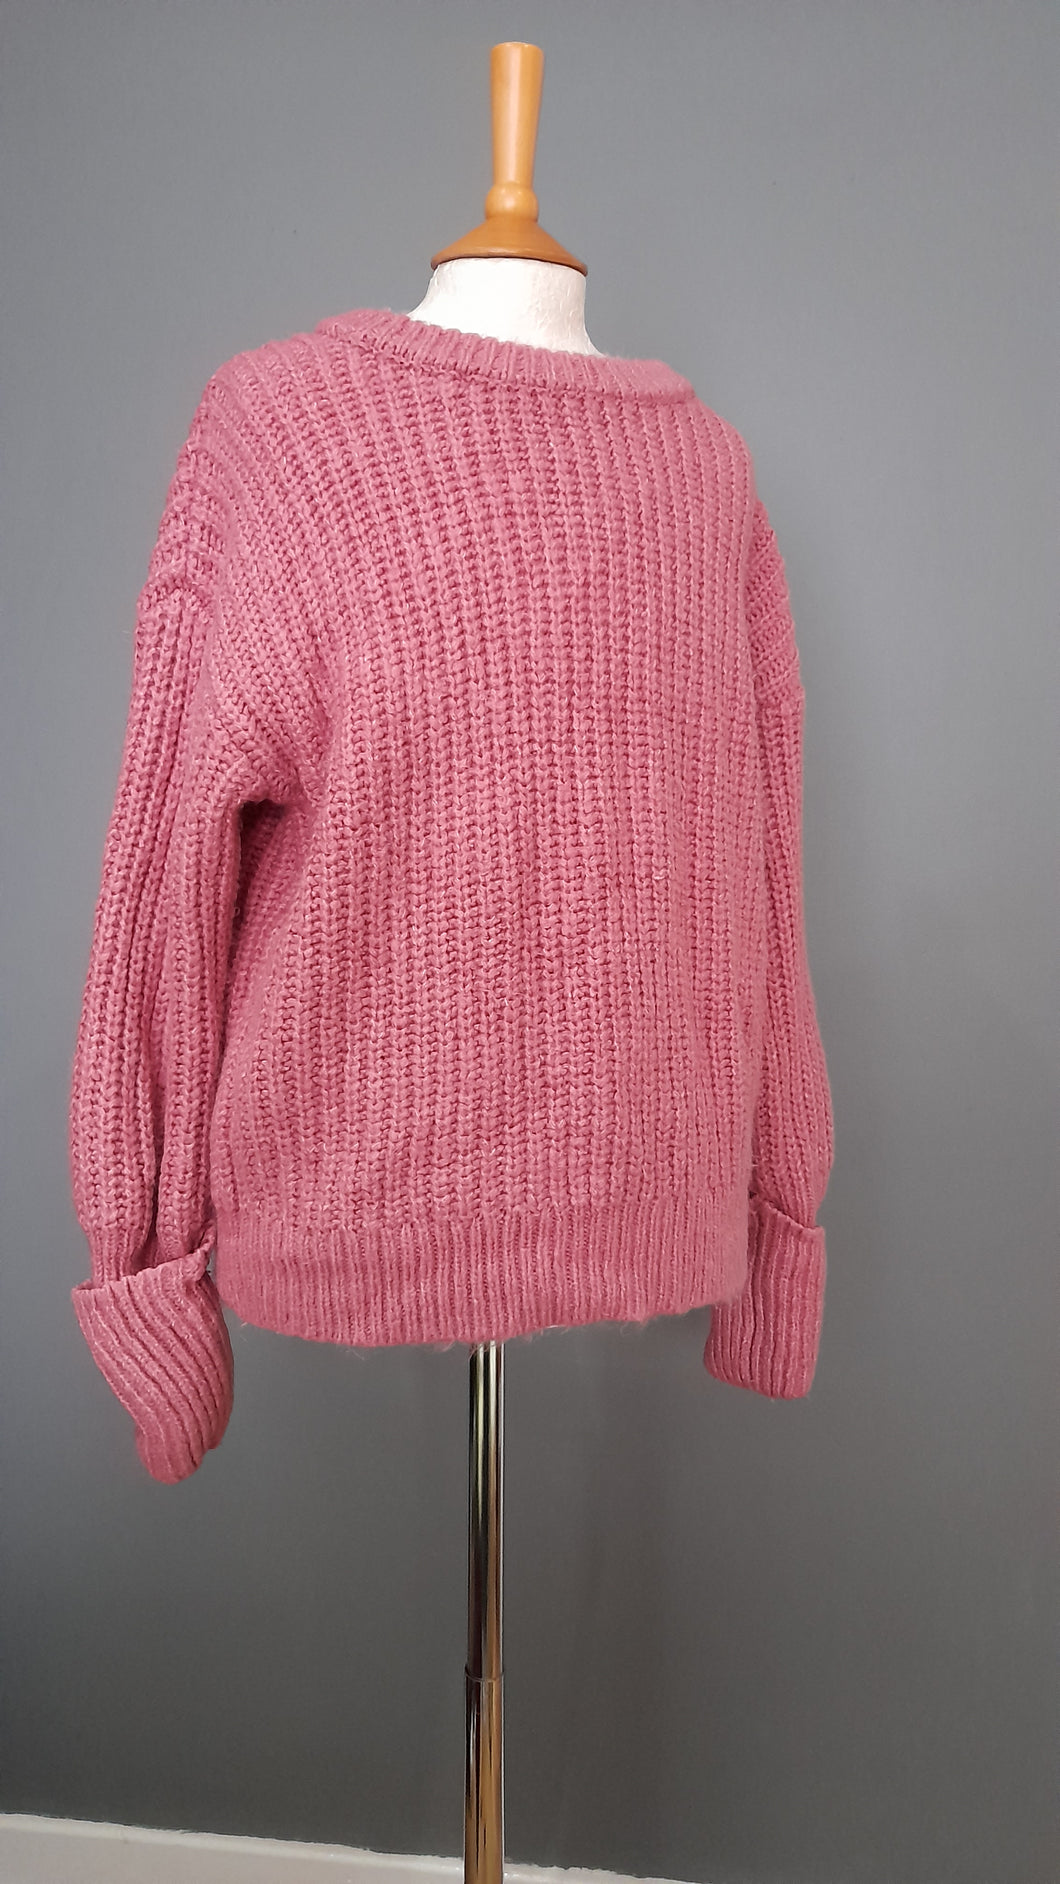 Size Medium Pink Knitted Jumper - George